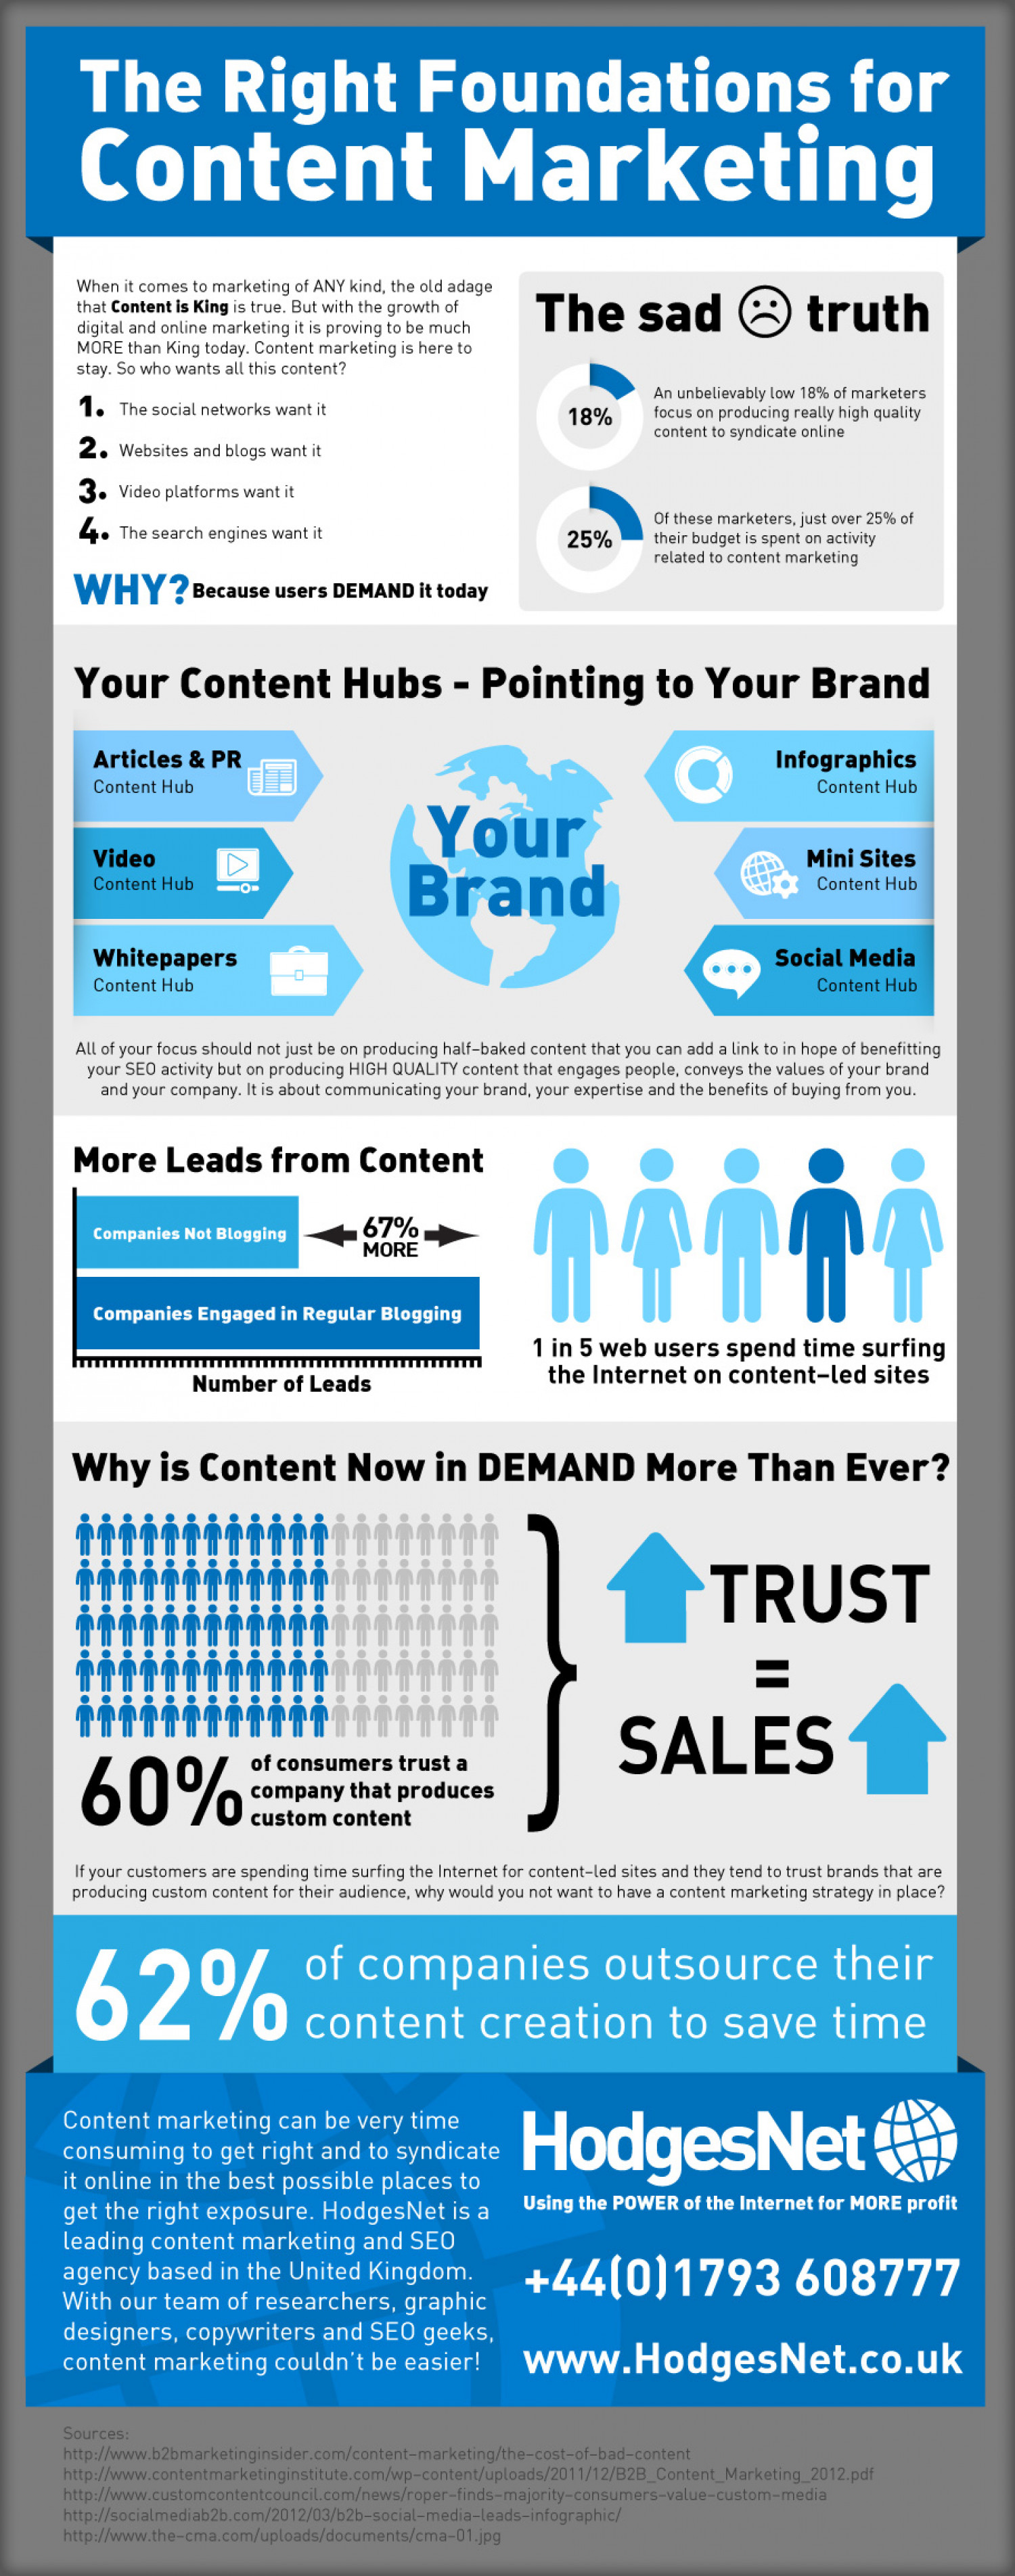 Content Marketing - The Foundations Infographic